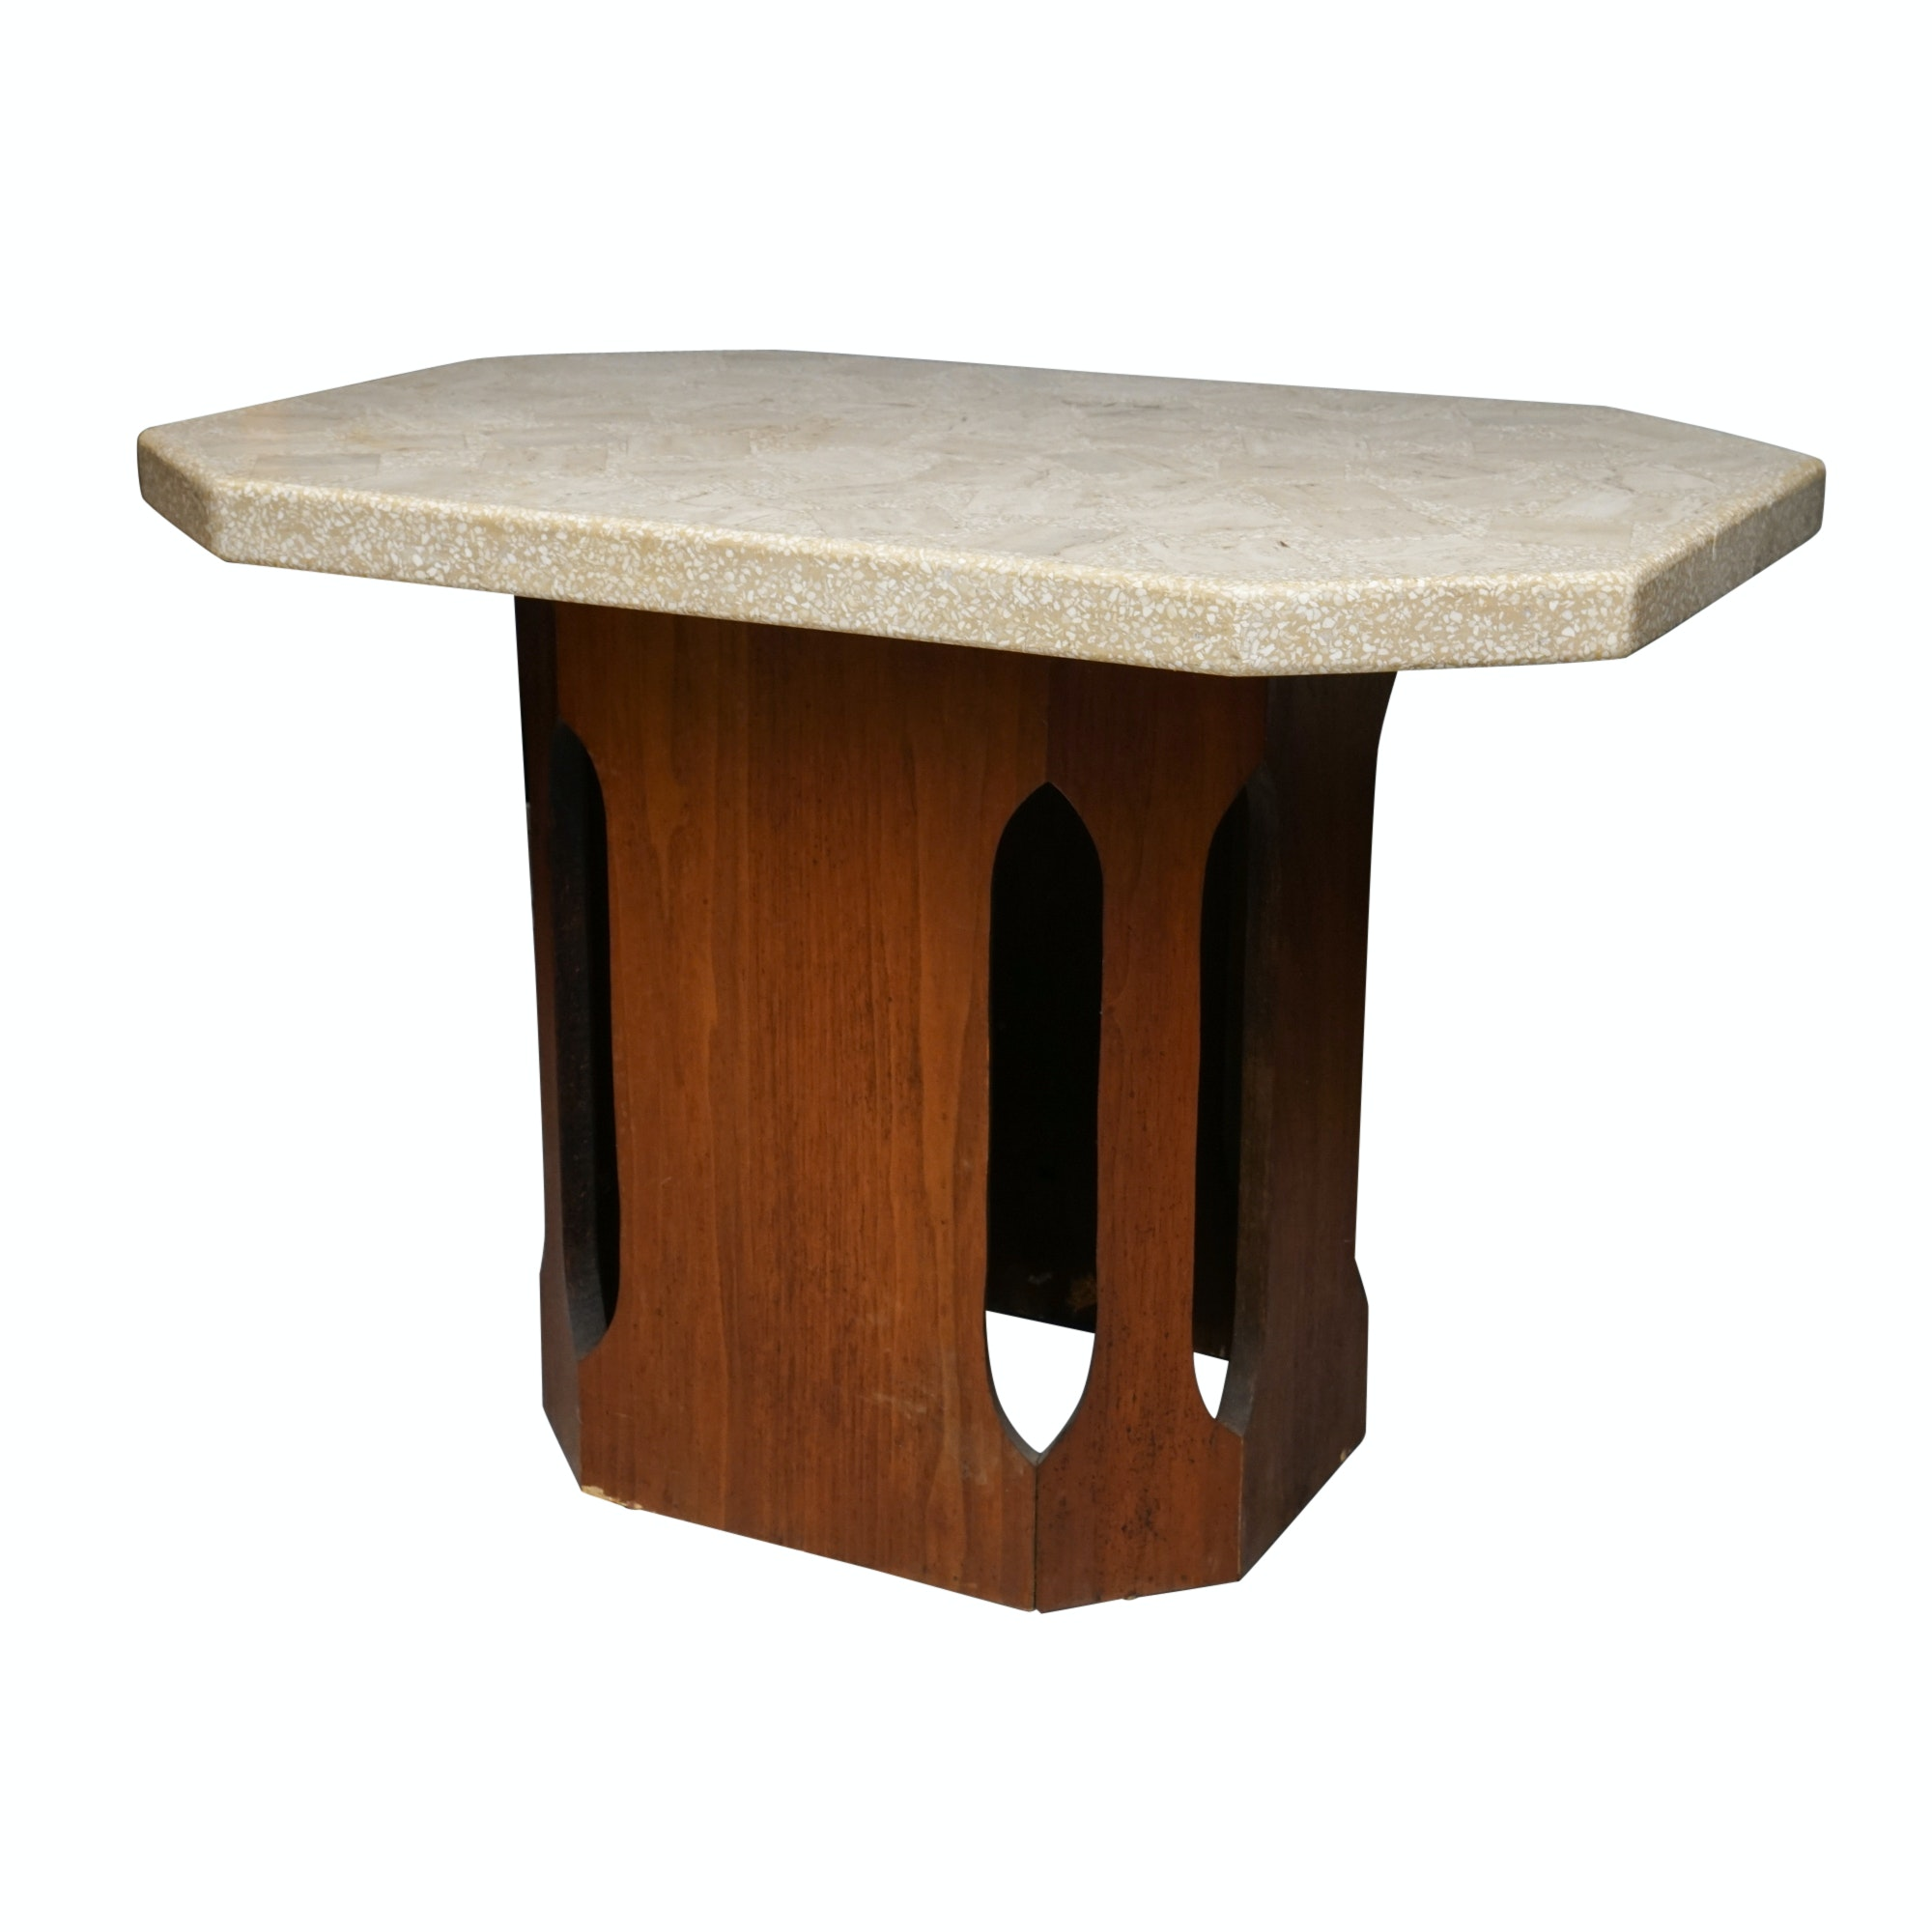 Probber Style Mid Century Modern Stone Top Accent Table